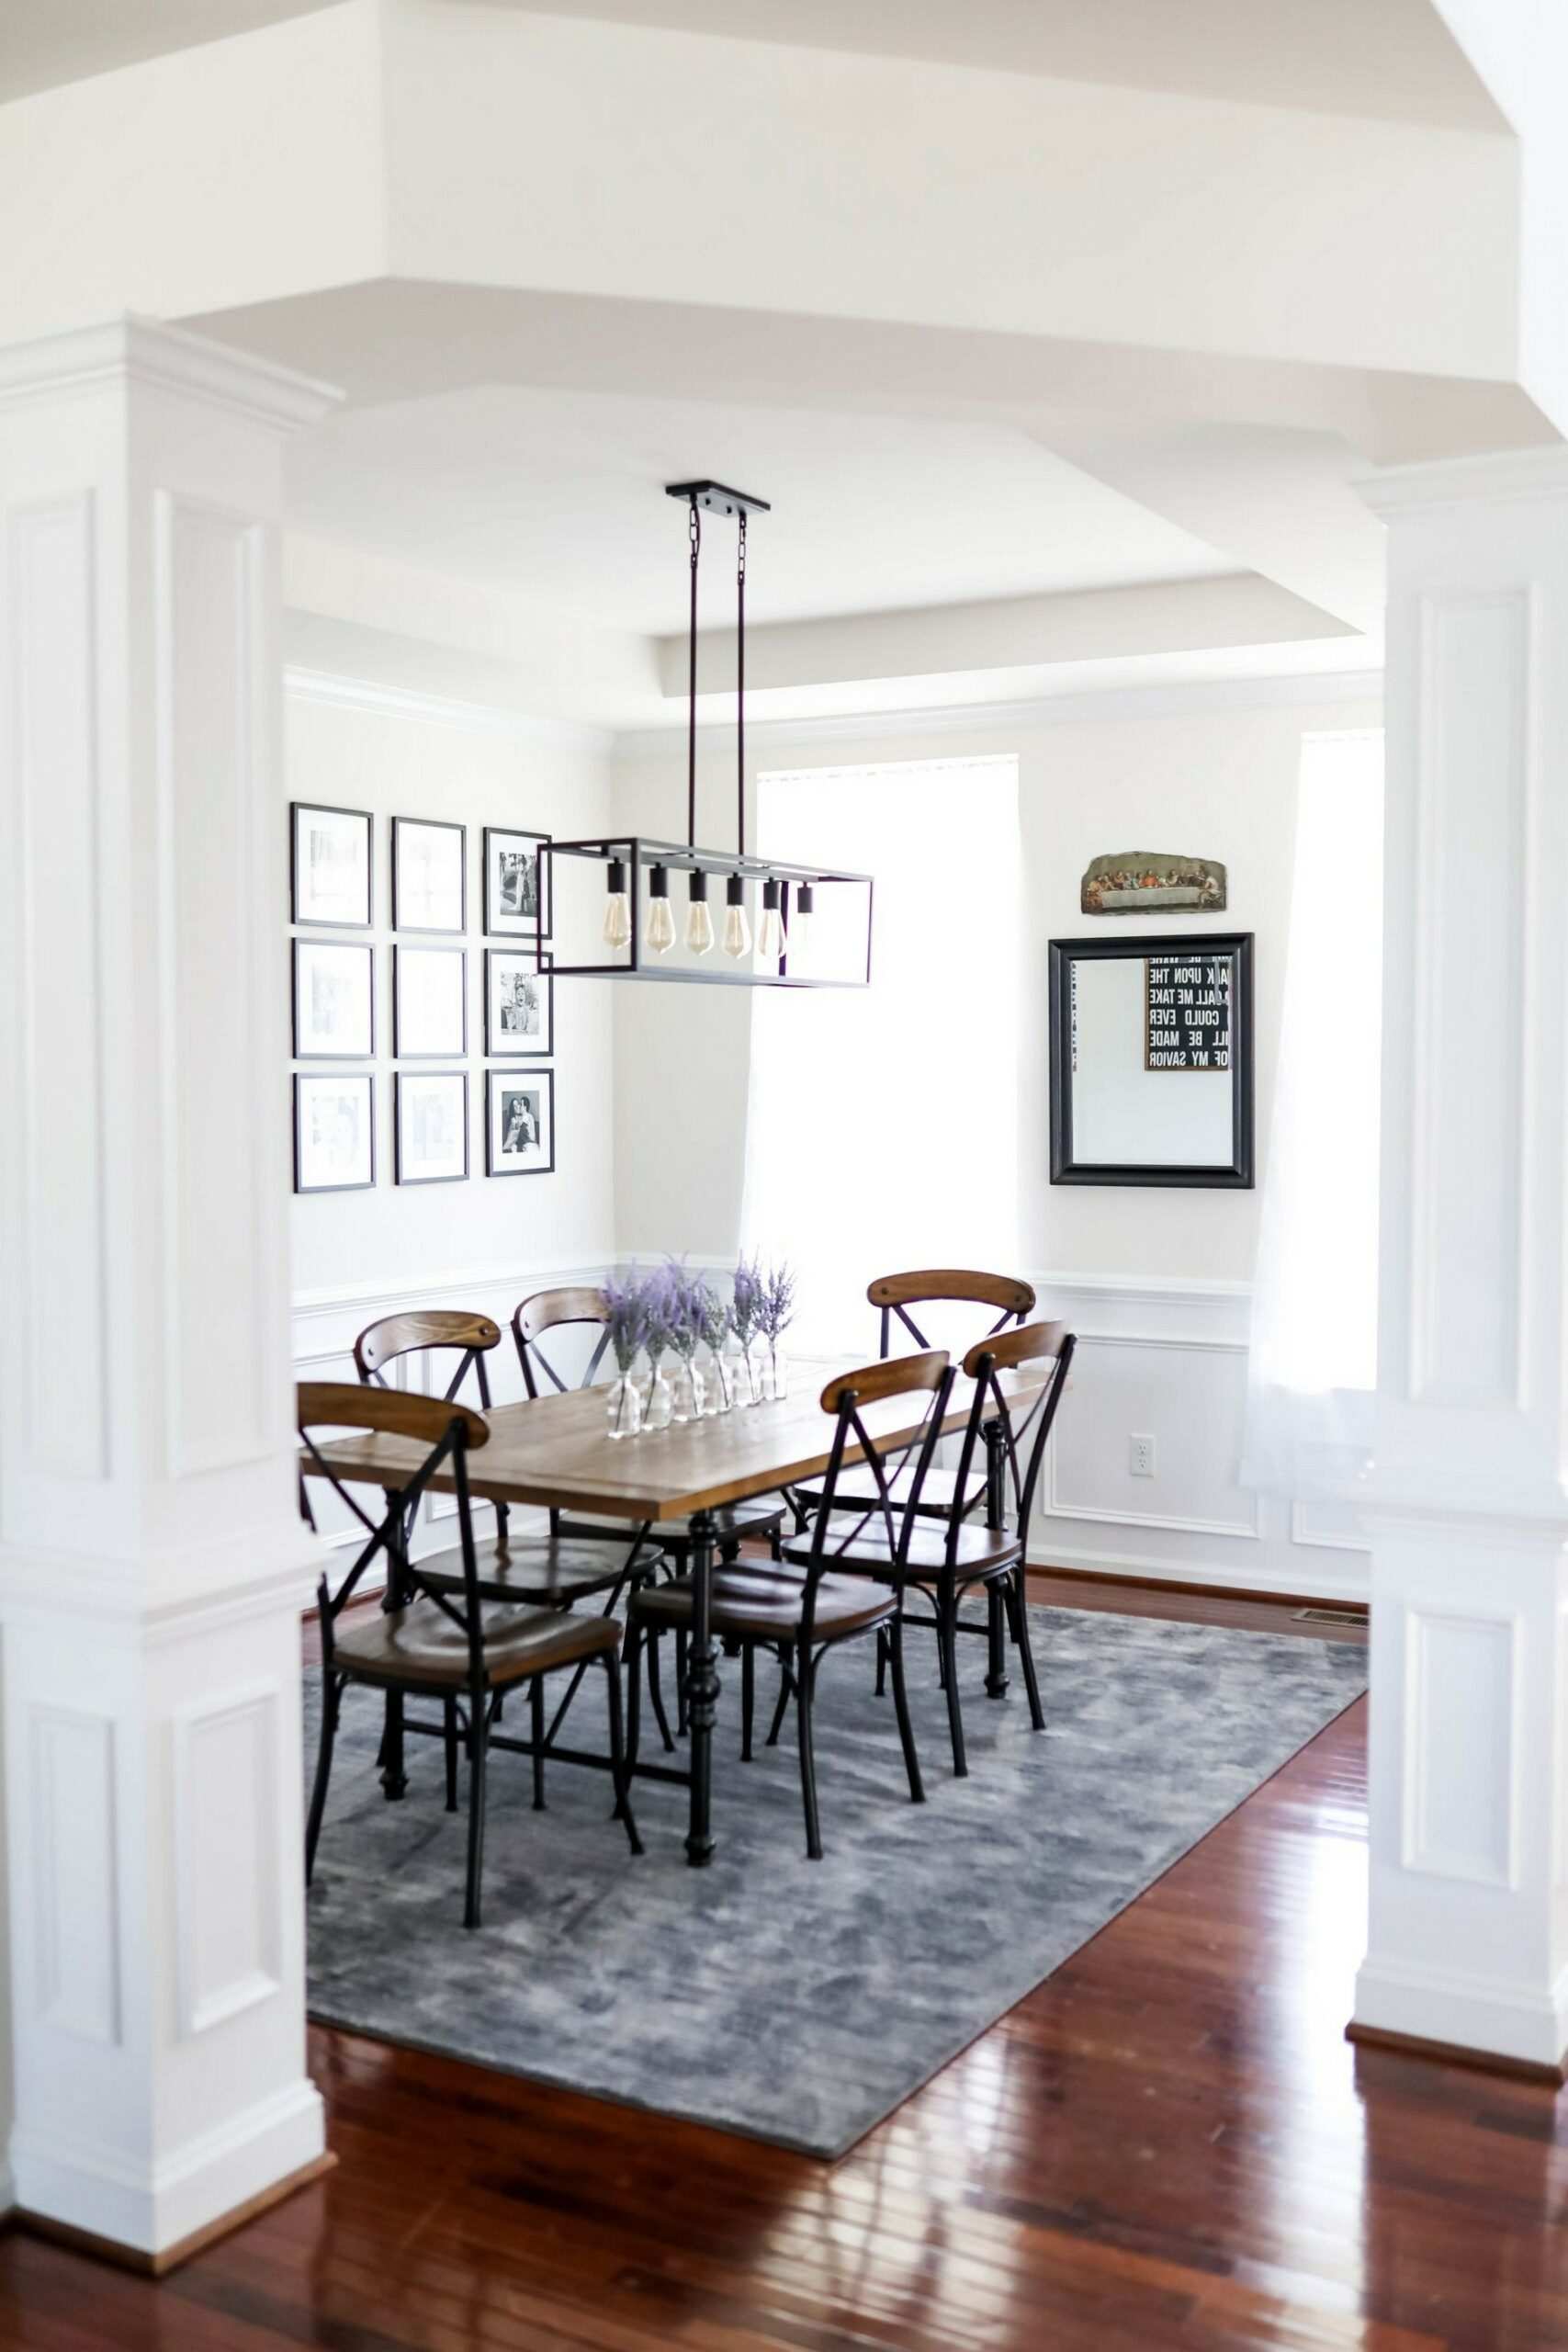 86 Different Types Of Dining Chairs Home Decor 26